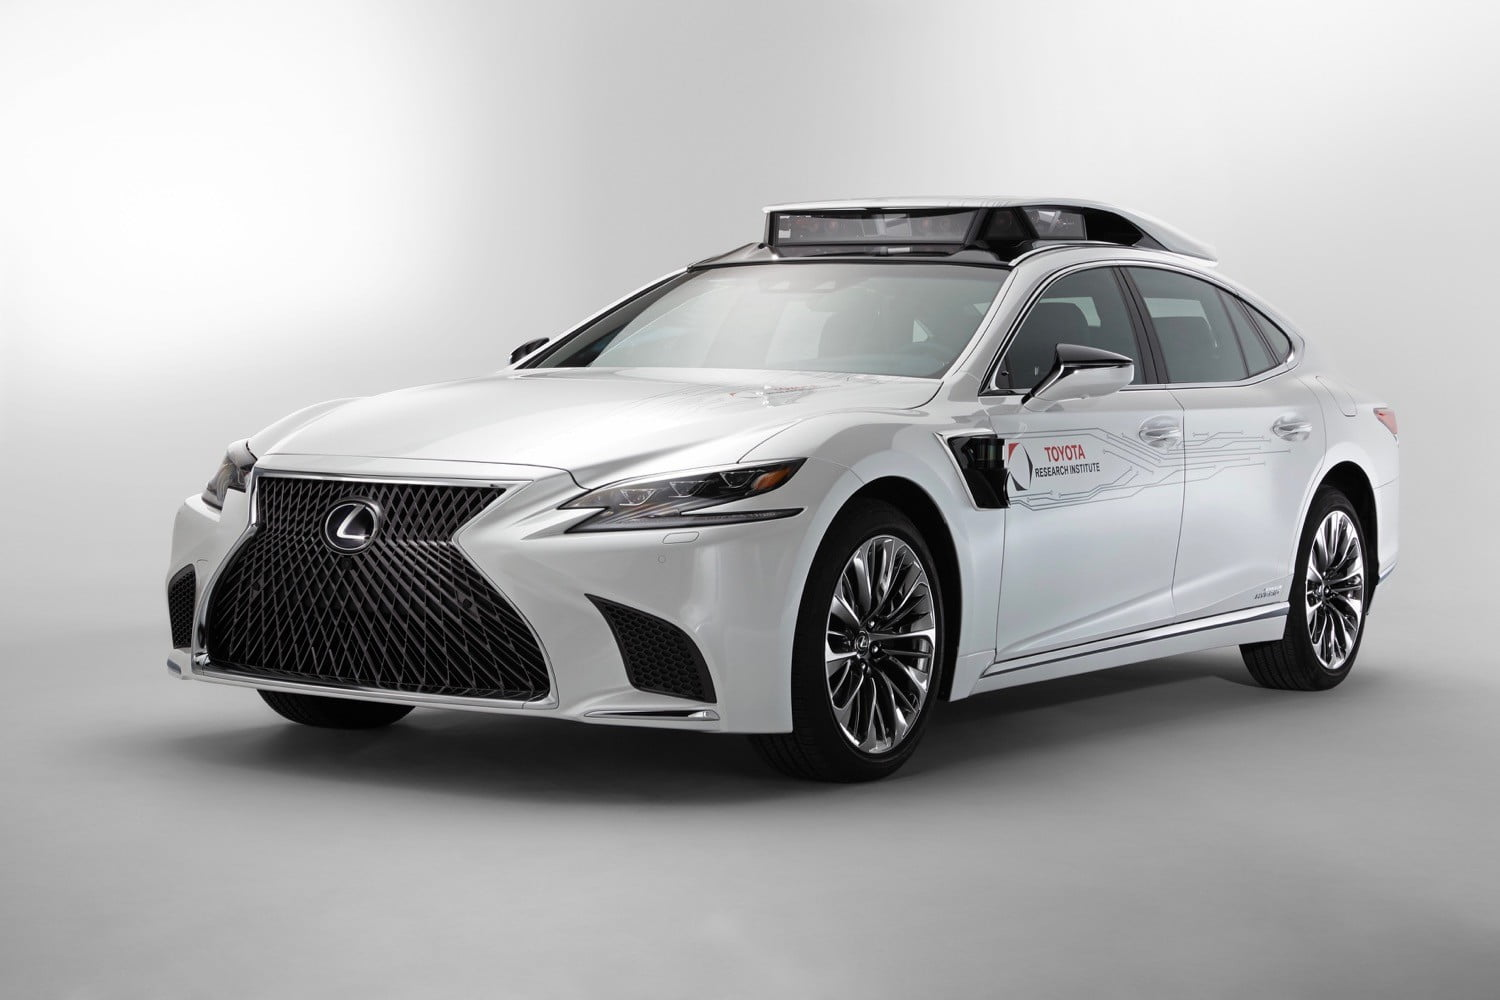 Toyota's Guardian system aims to help human drivers, not replace them